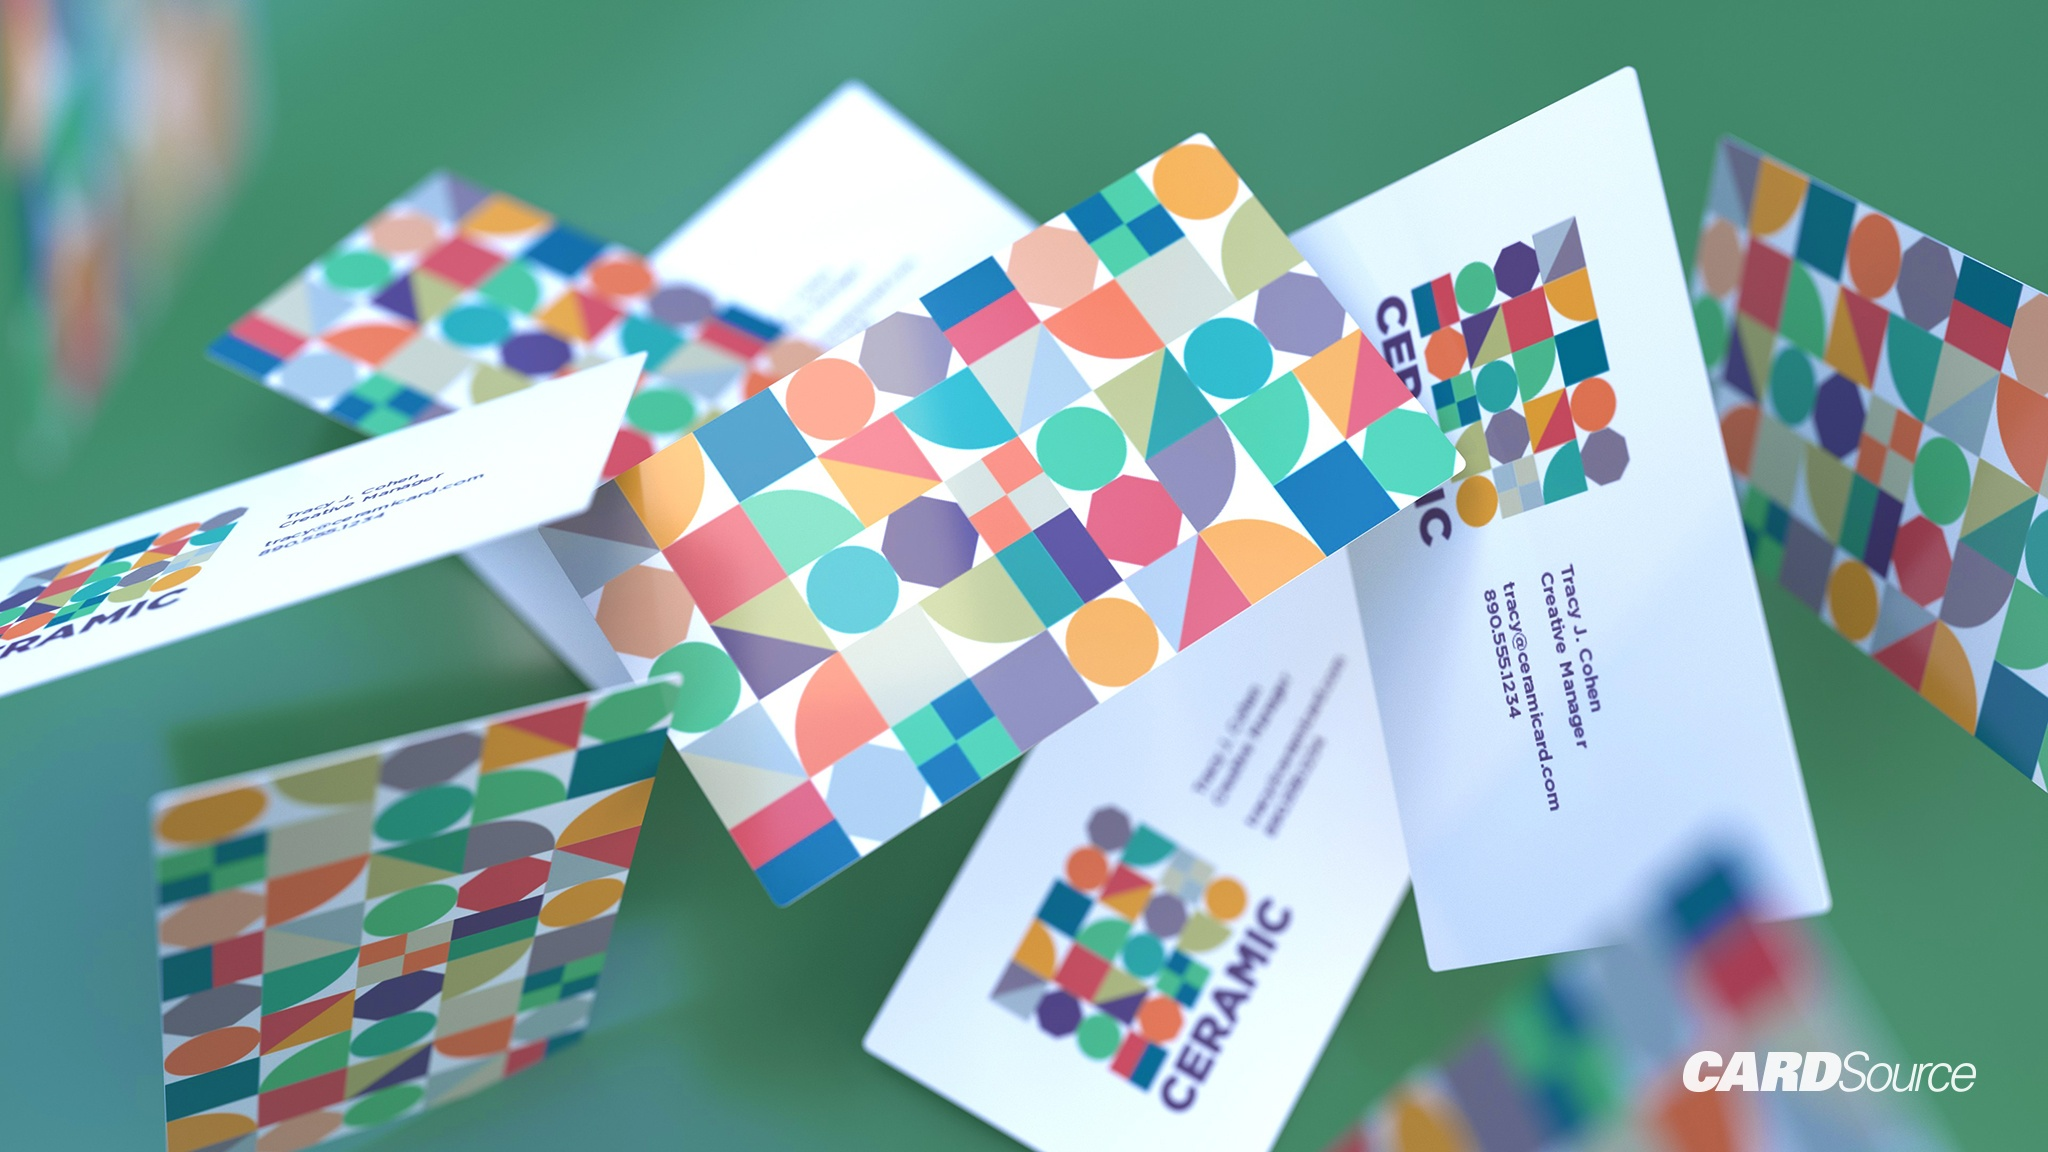 Ceramic Business card Cardsource Design